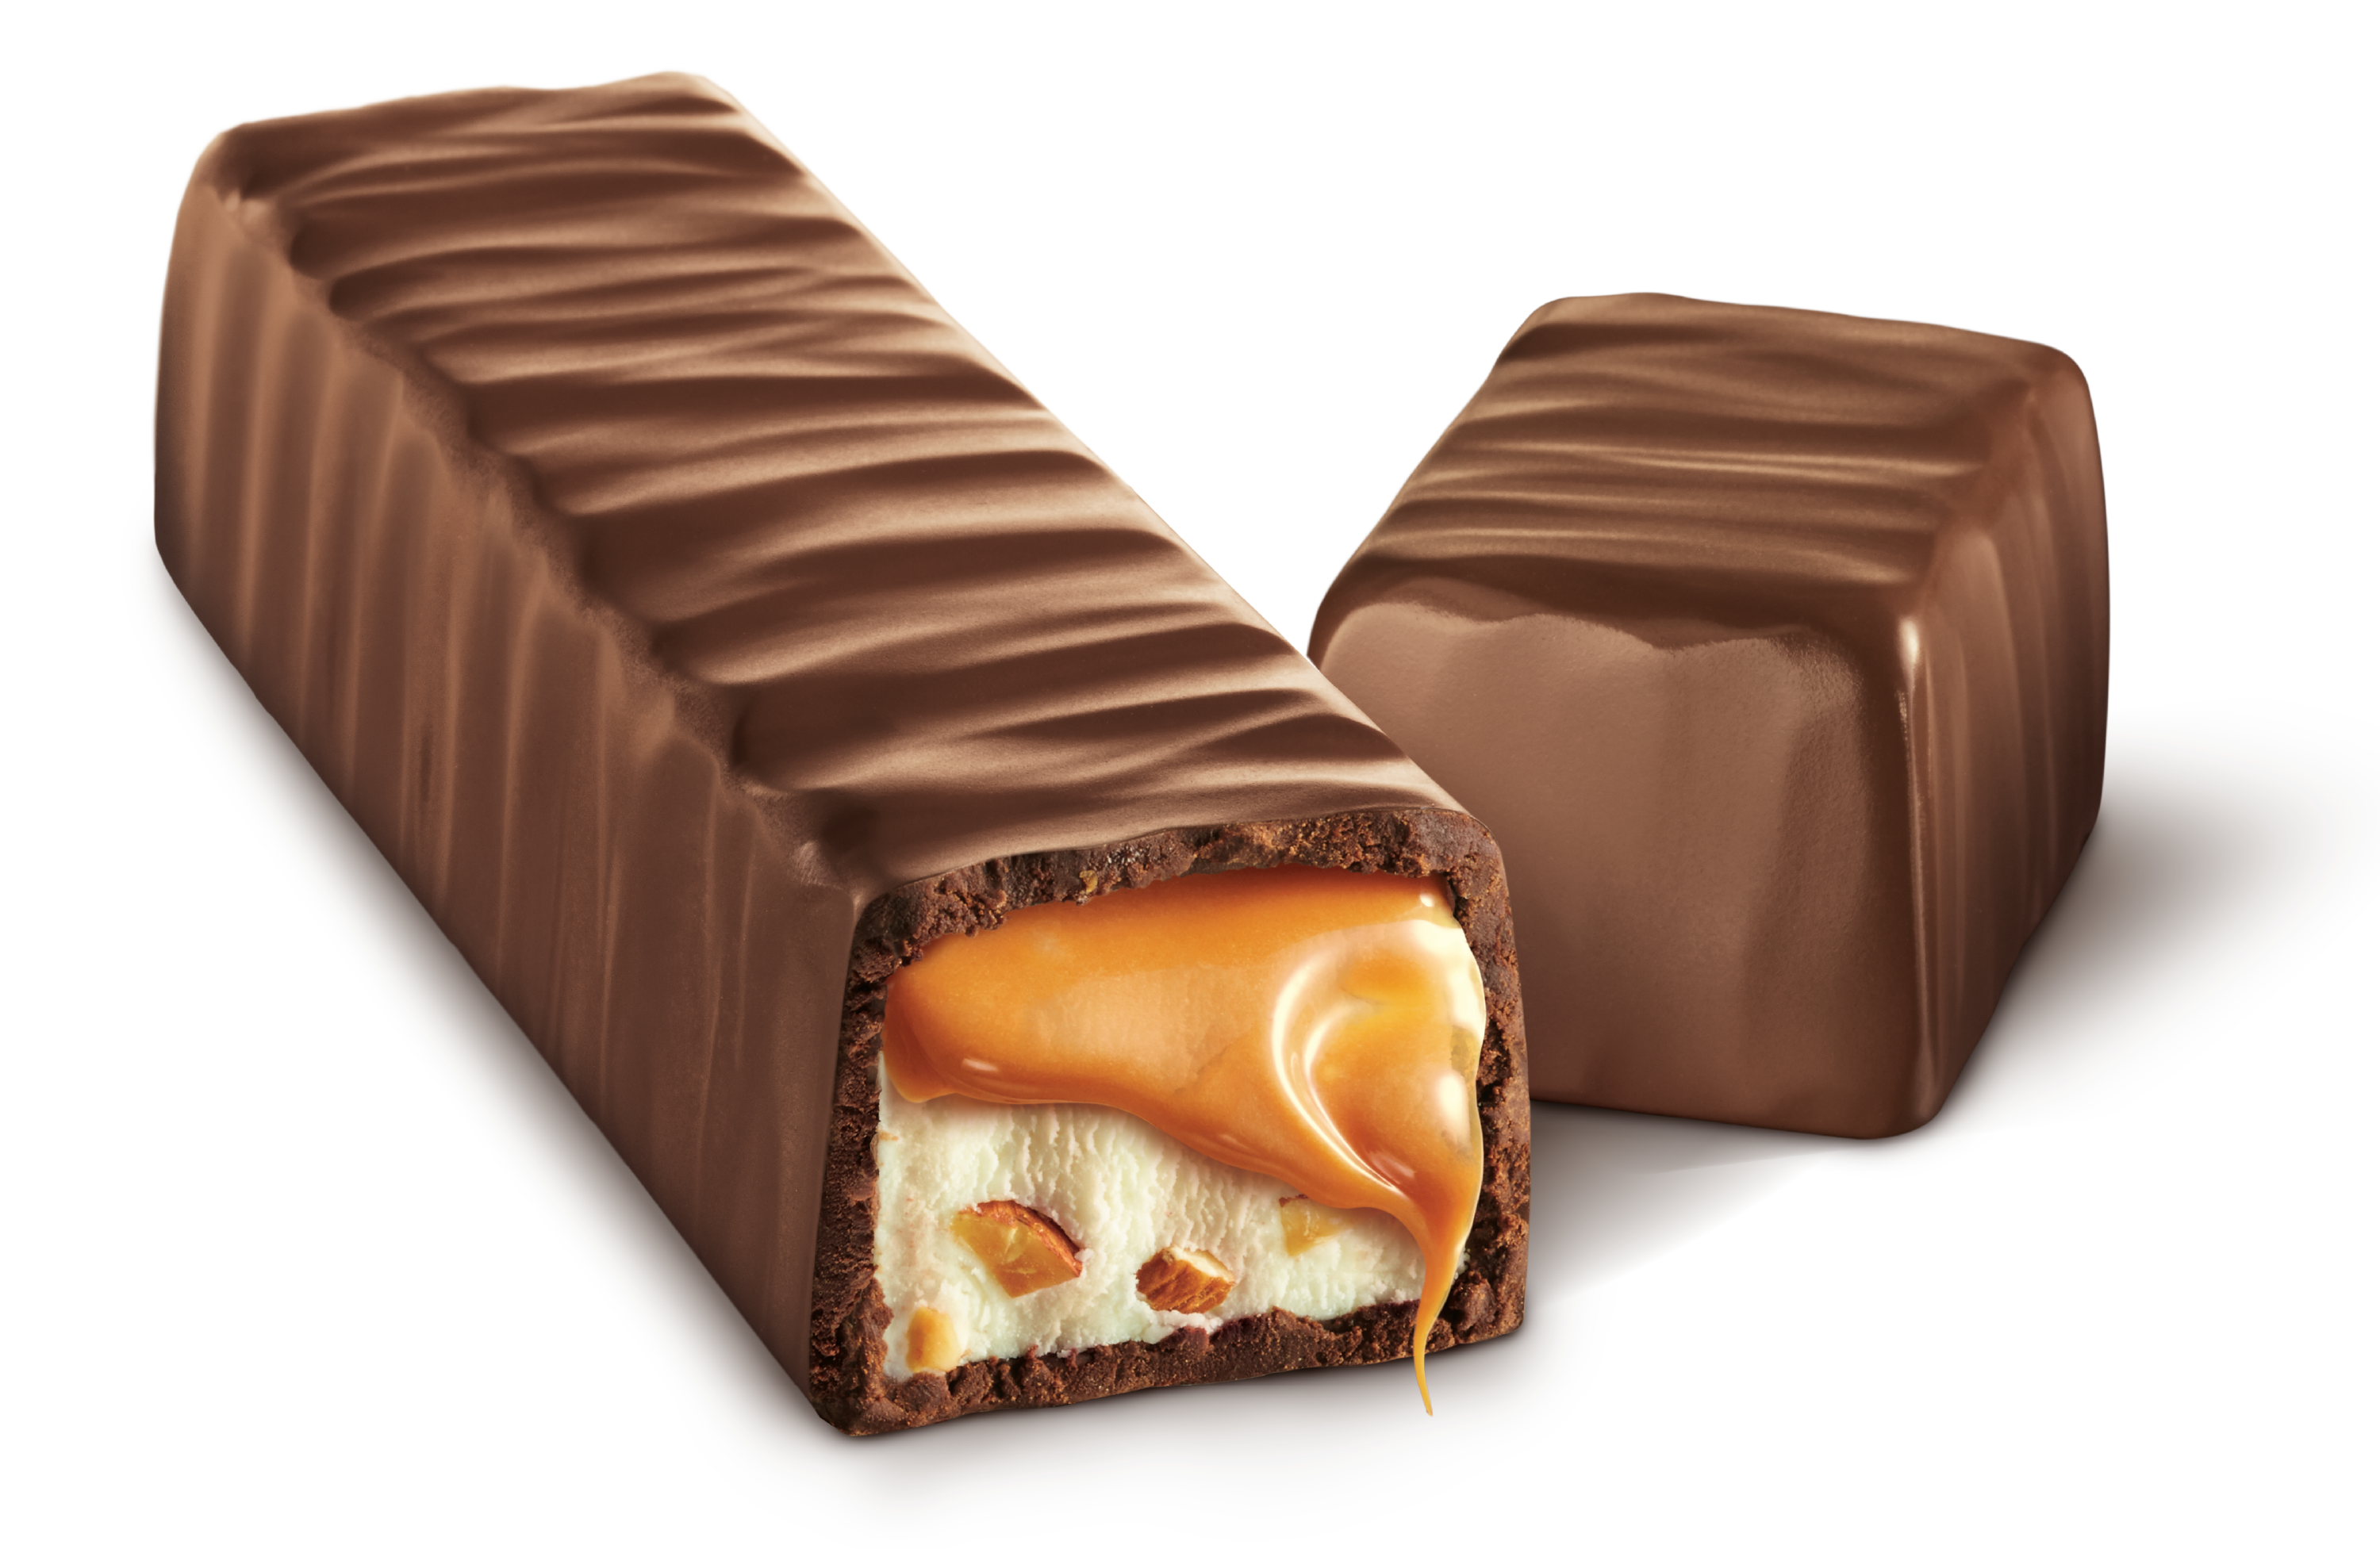 Caramel - Chocolate Bar HD PNG